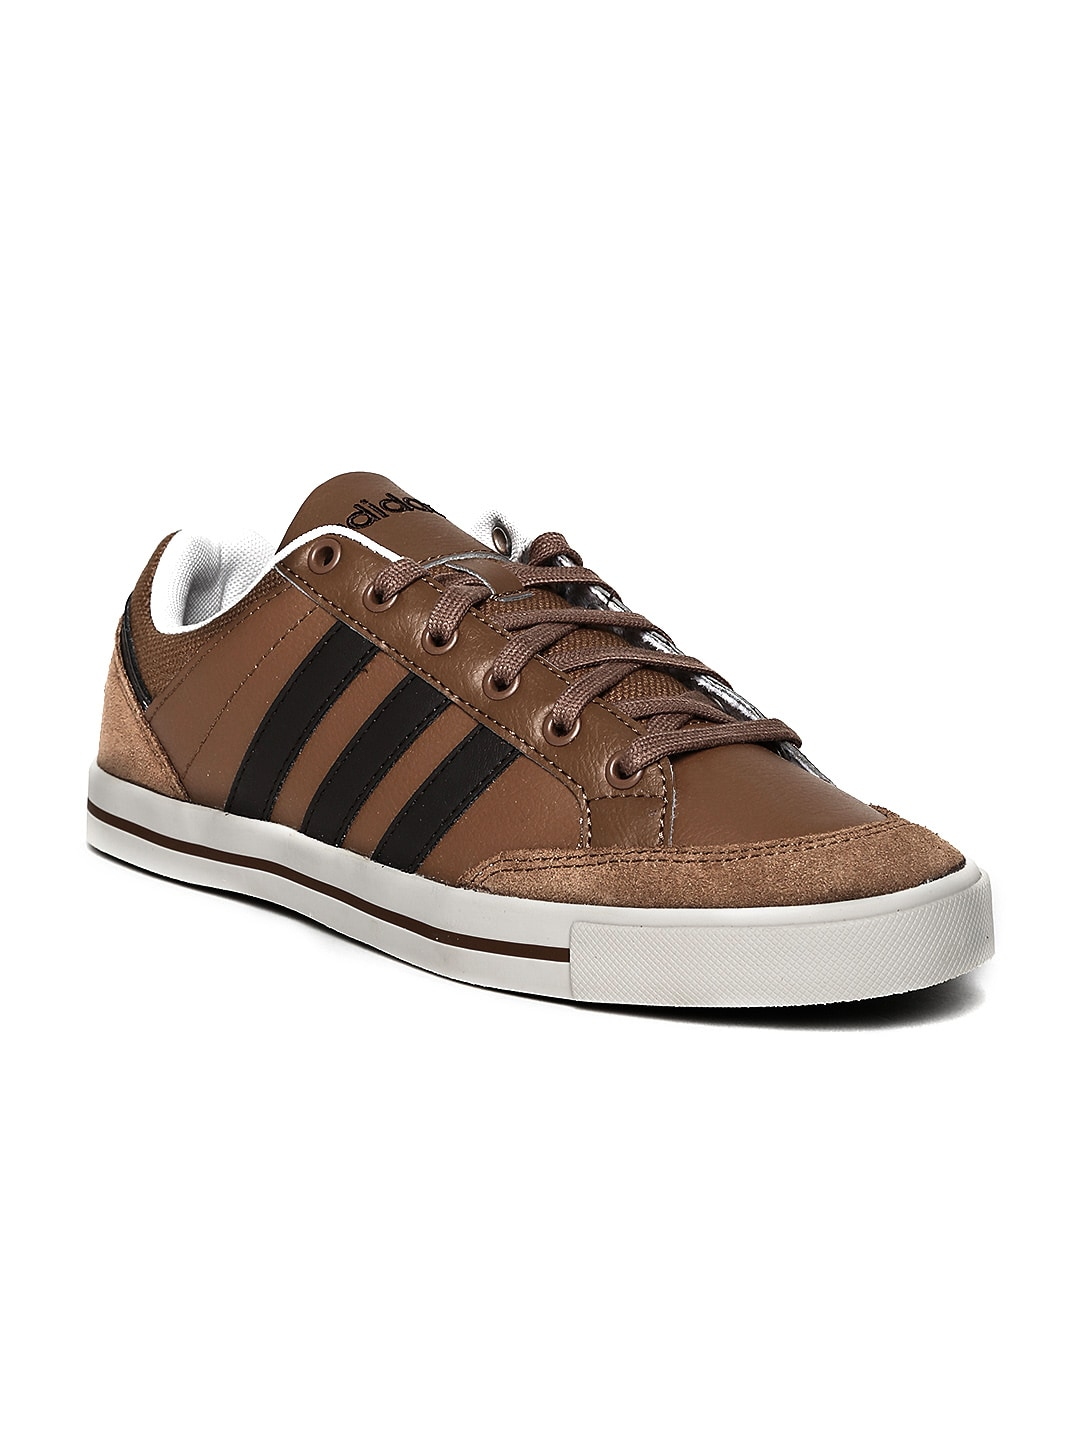 46028442e868 Adidas neo f97697 Men Brown Cacity Leather Casual Shoes- Price in India